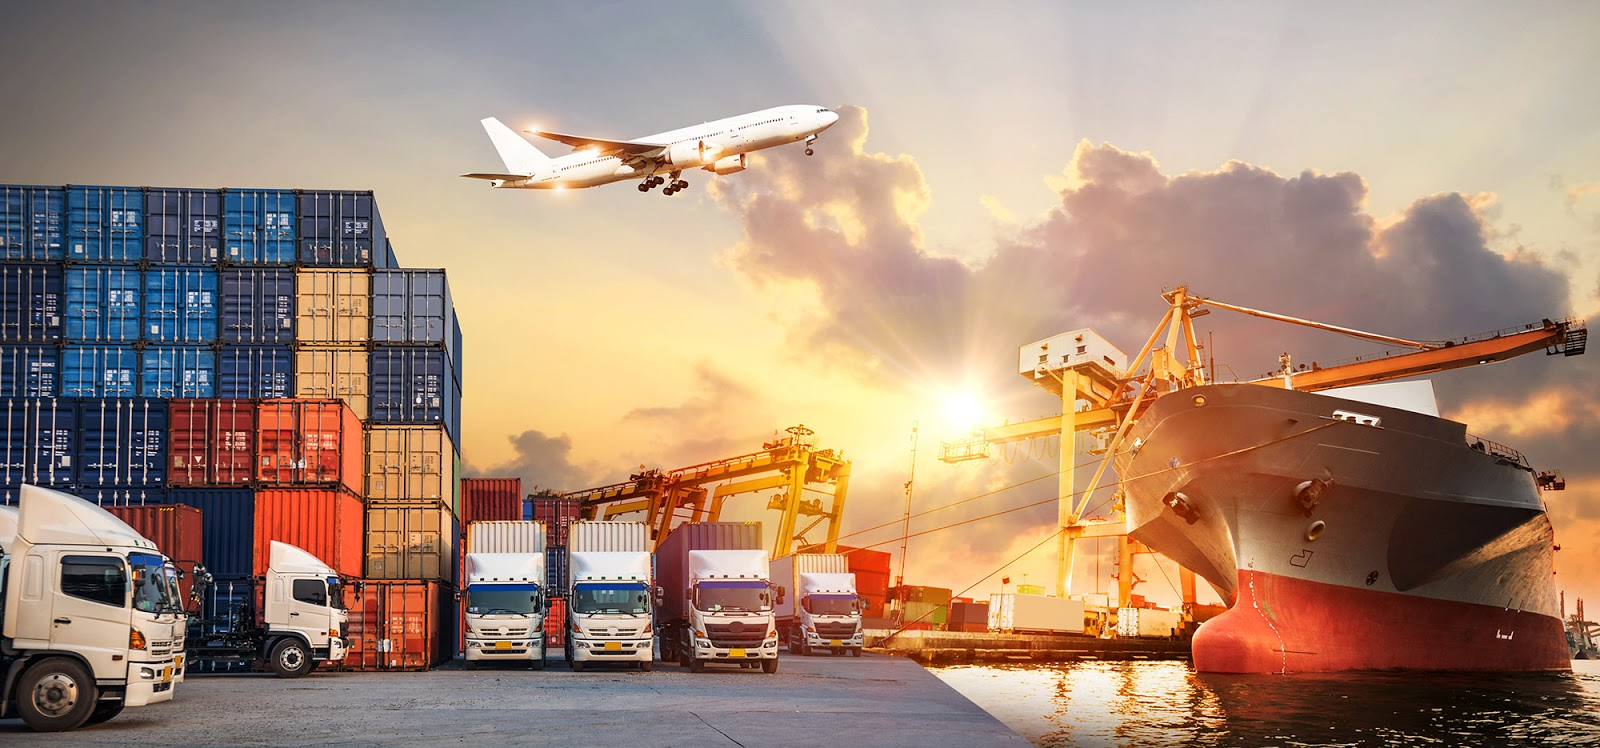 global-freight-transportation-made-easy-with-smb-logistics